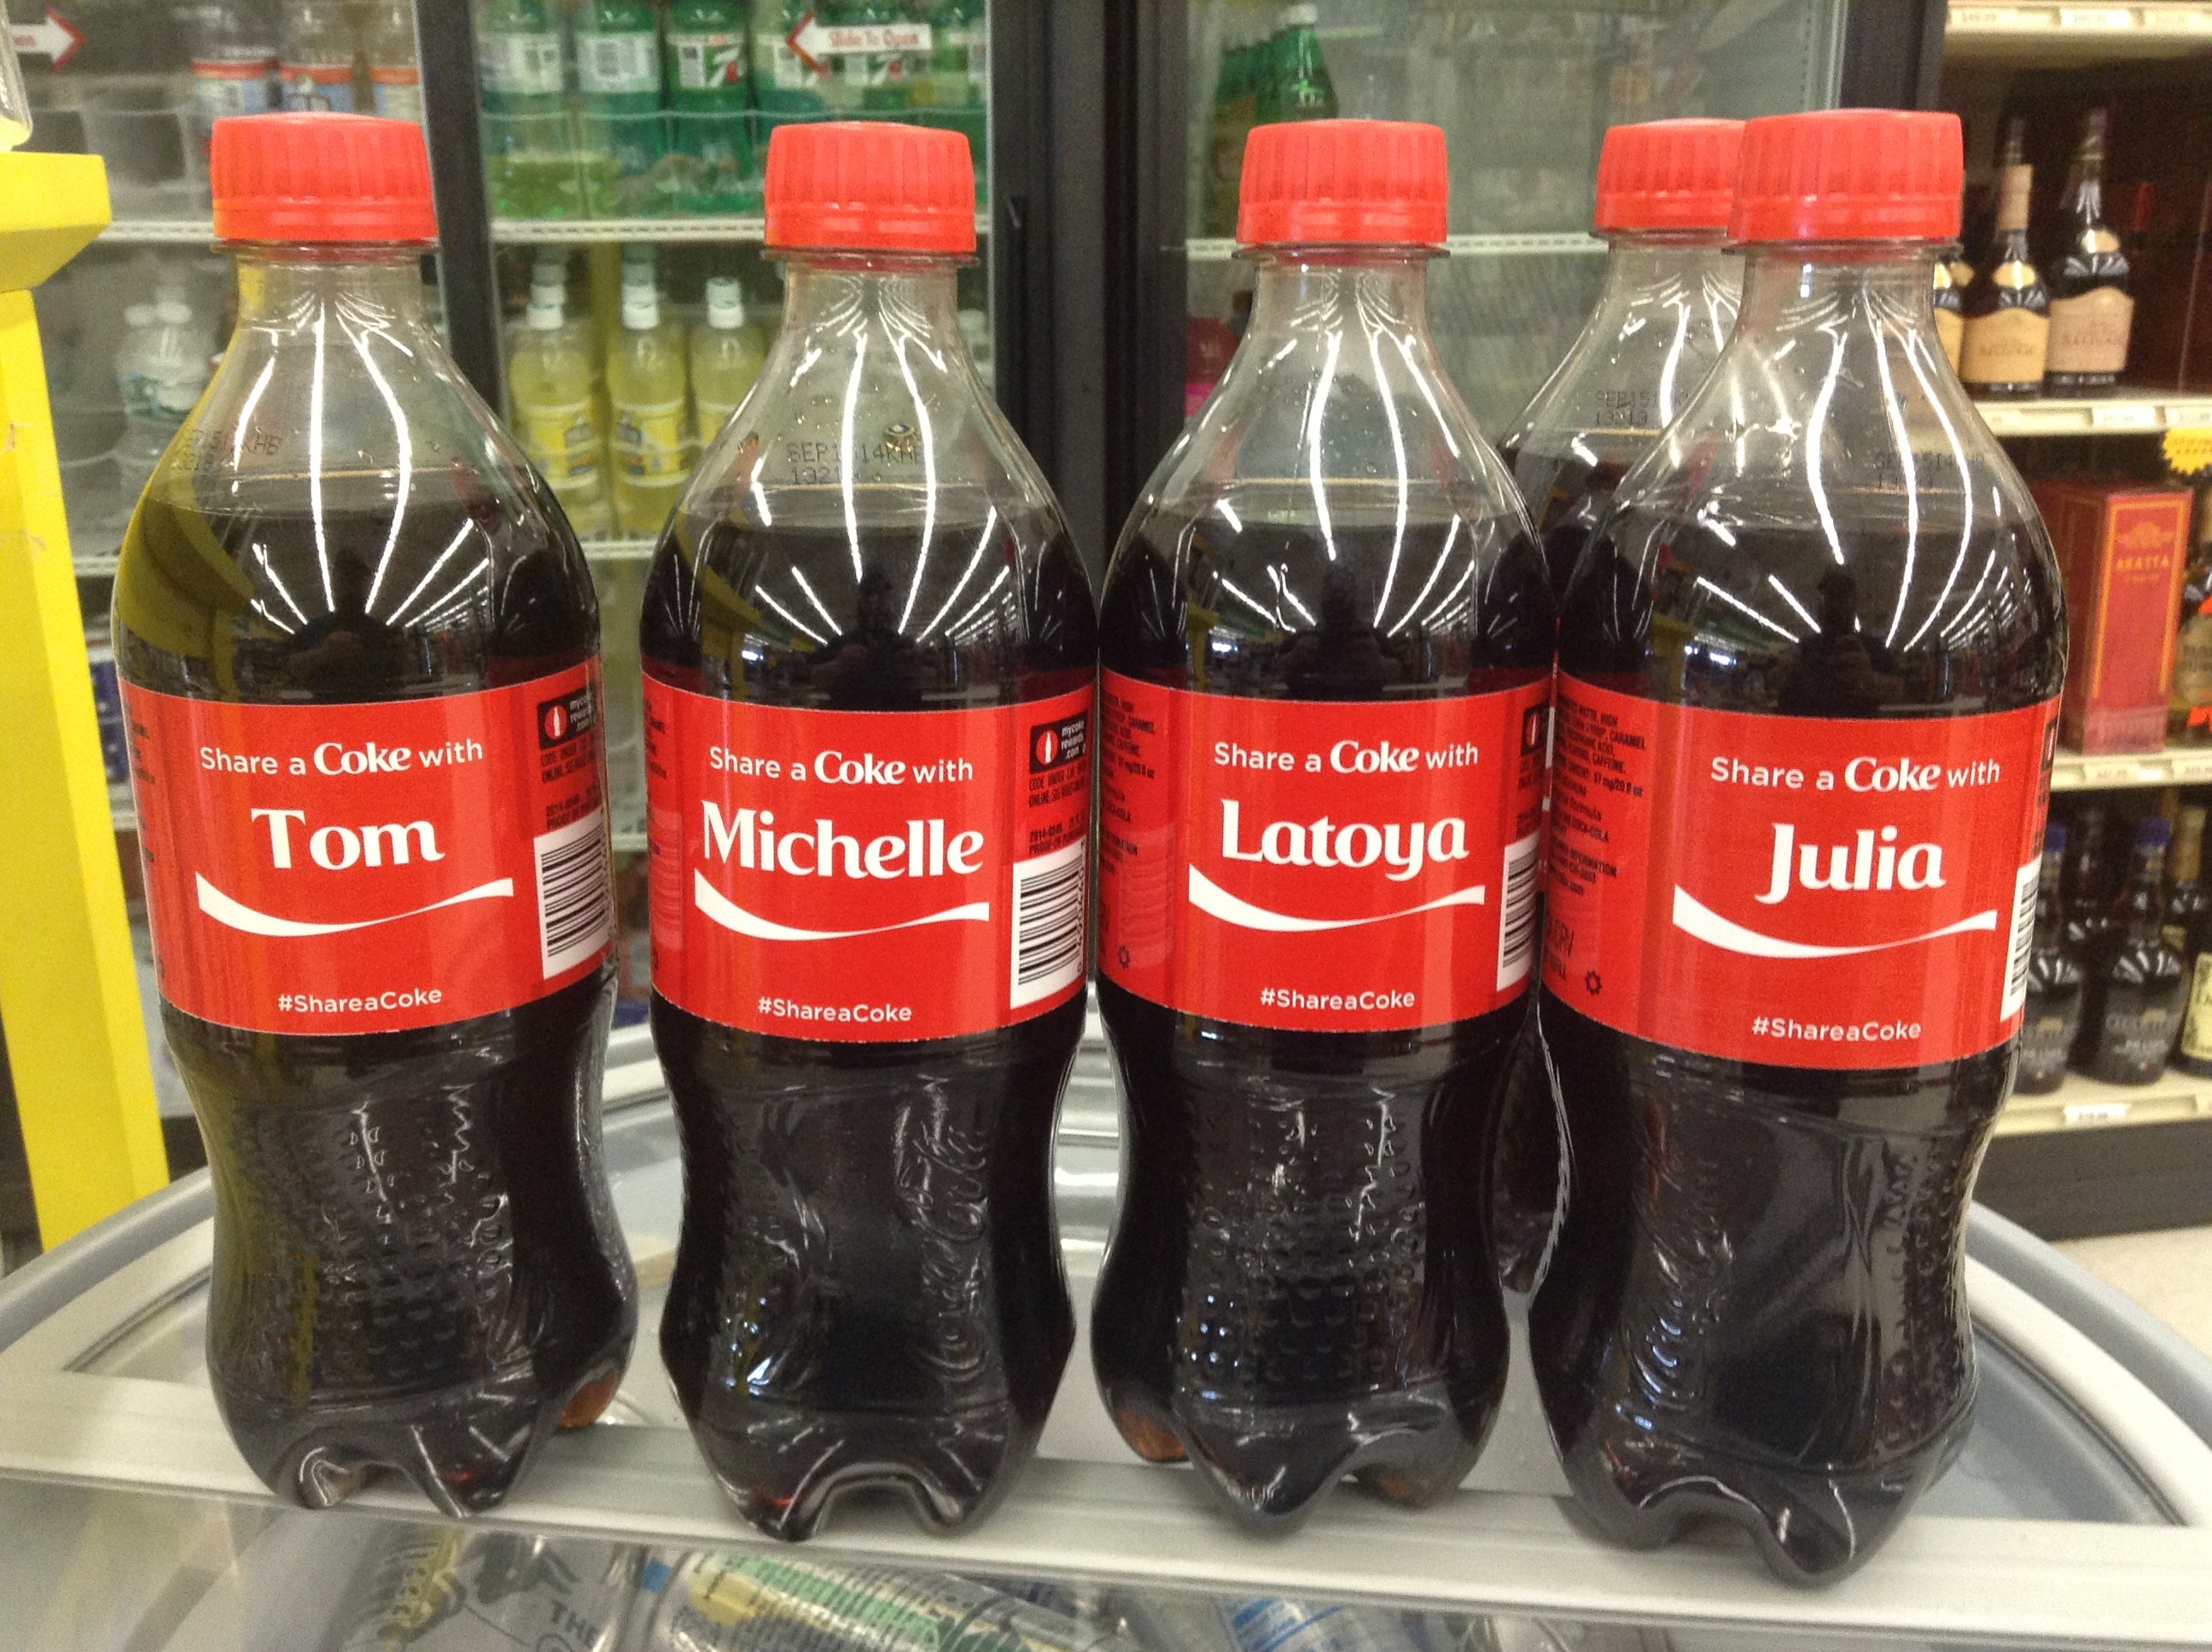 Personalized Coke bottles